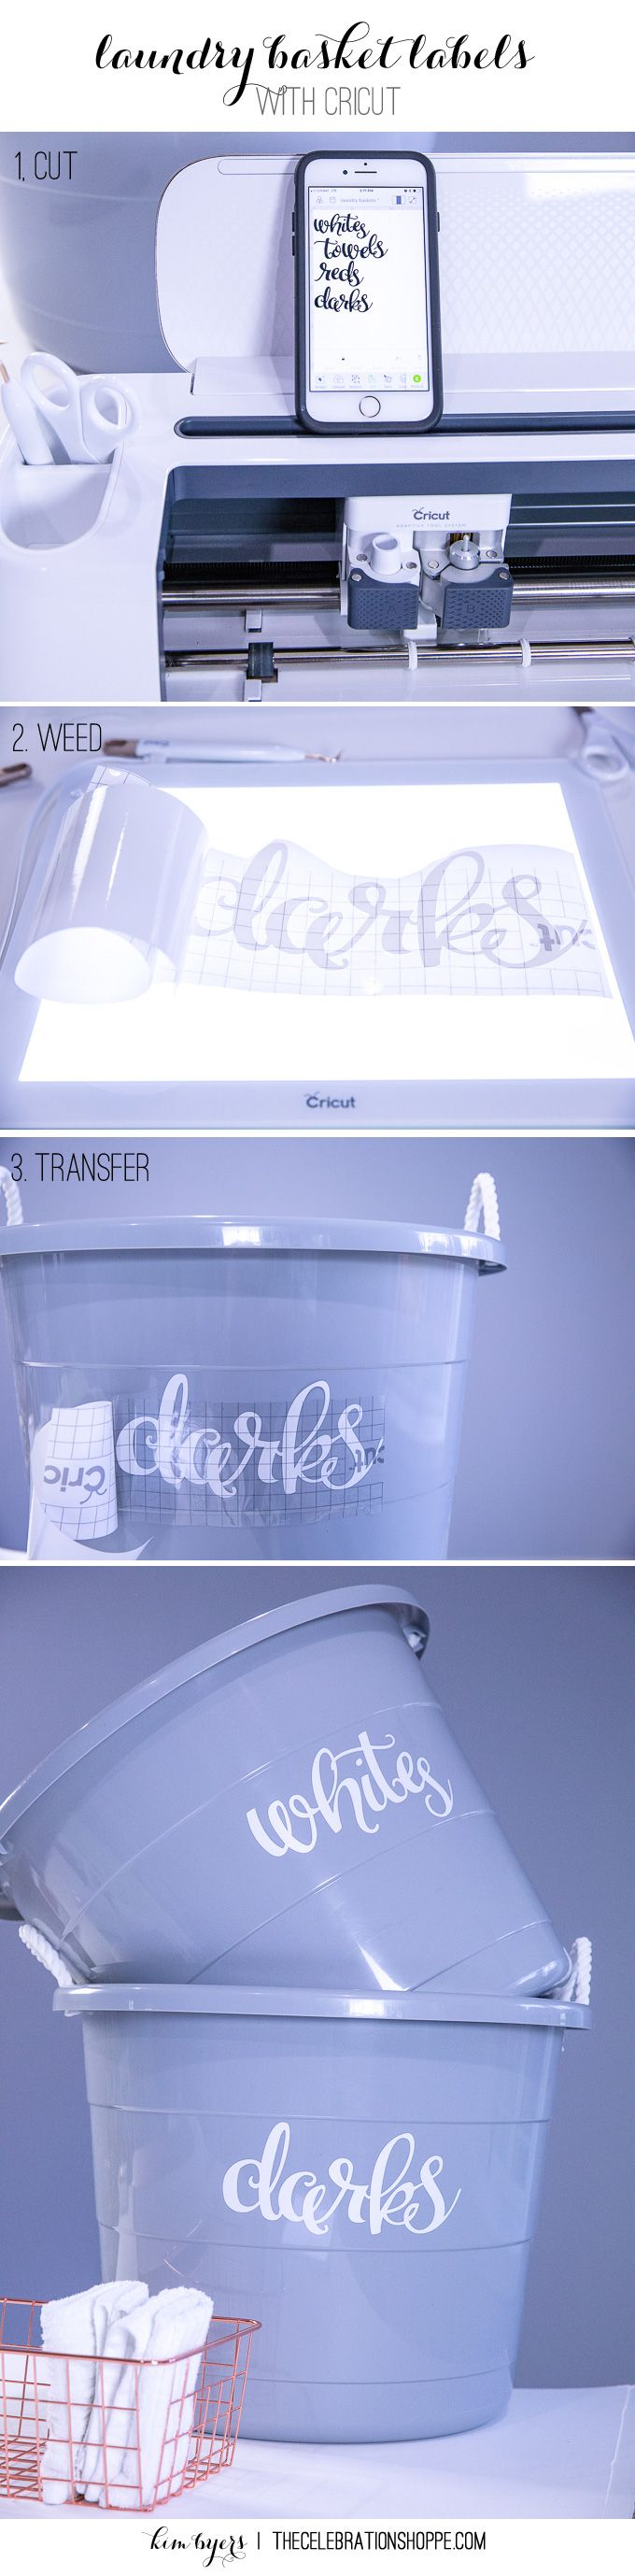 Learn To Make Easy Laundry Basket Labels With Your Cricut | Kim Byers TheCelebrationShoppe.com